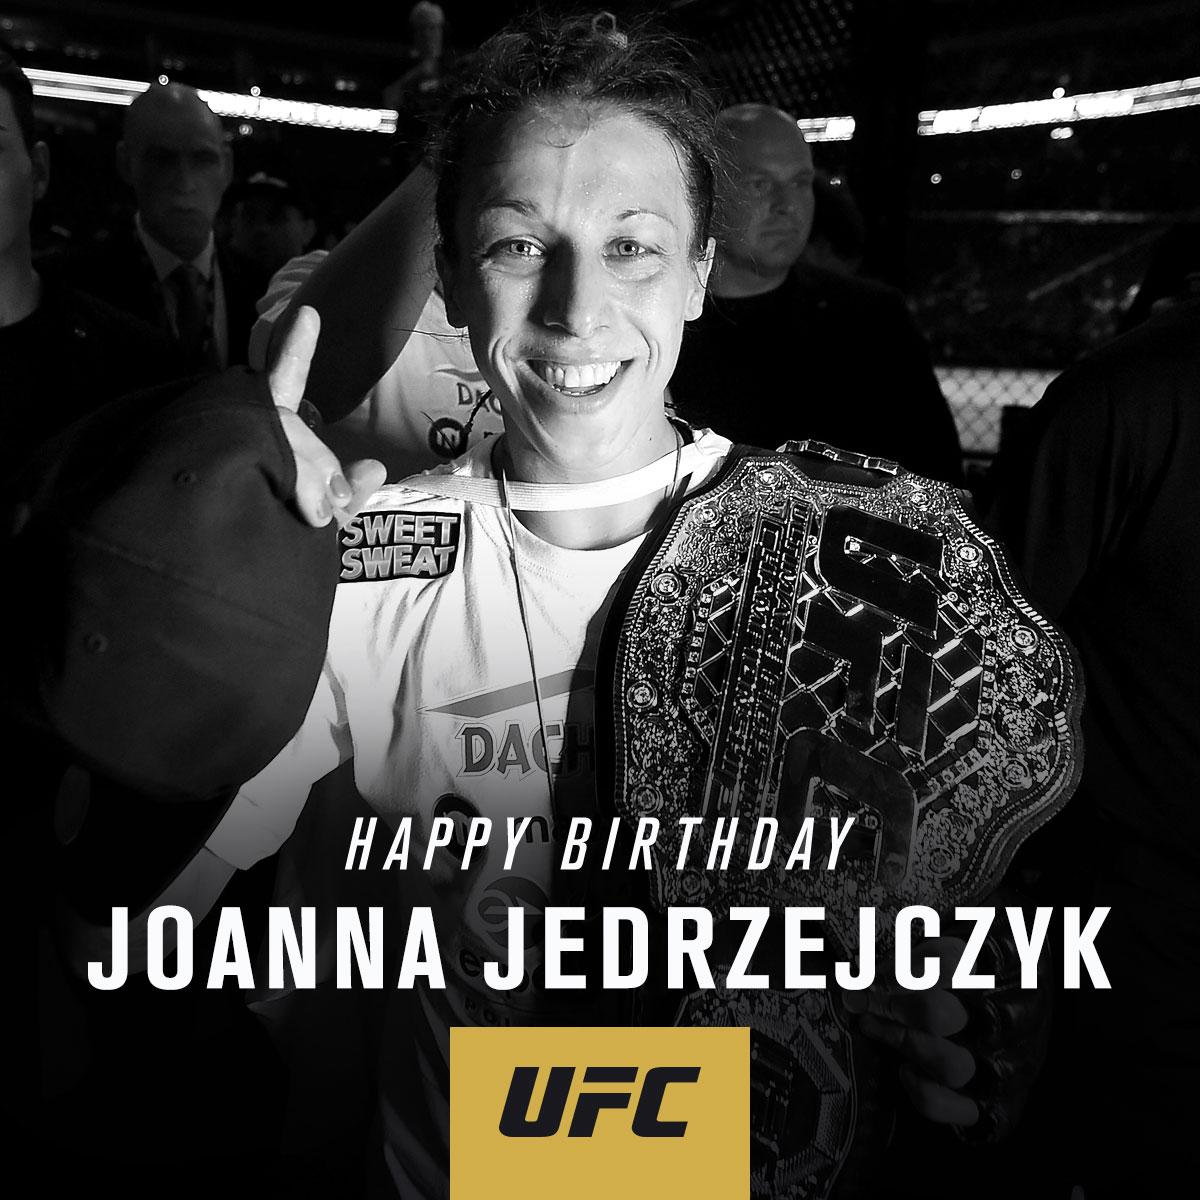 RT to wish the champ @JoannaMMA a Happy Birthday!